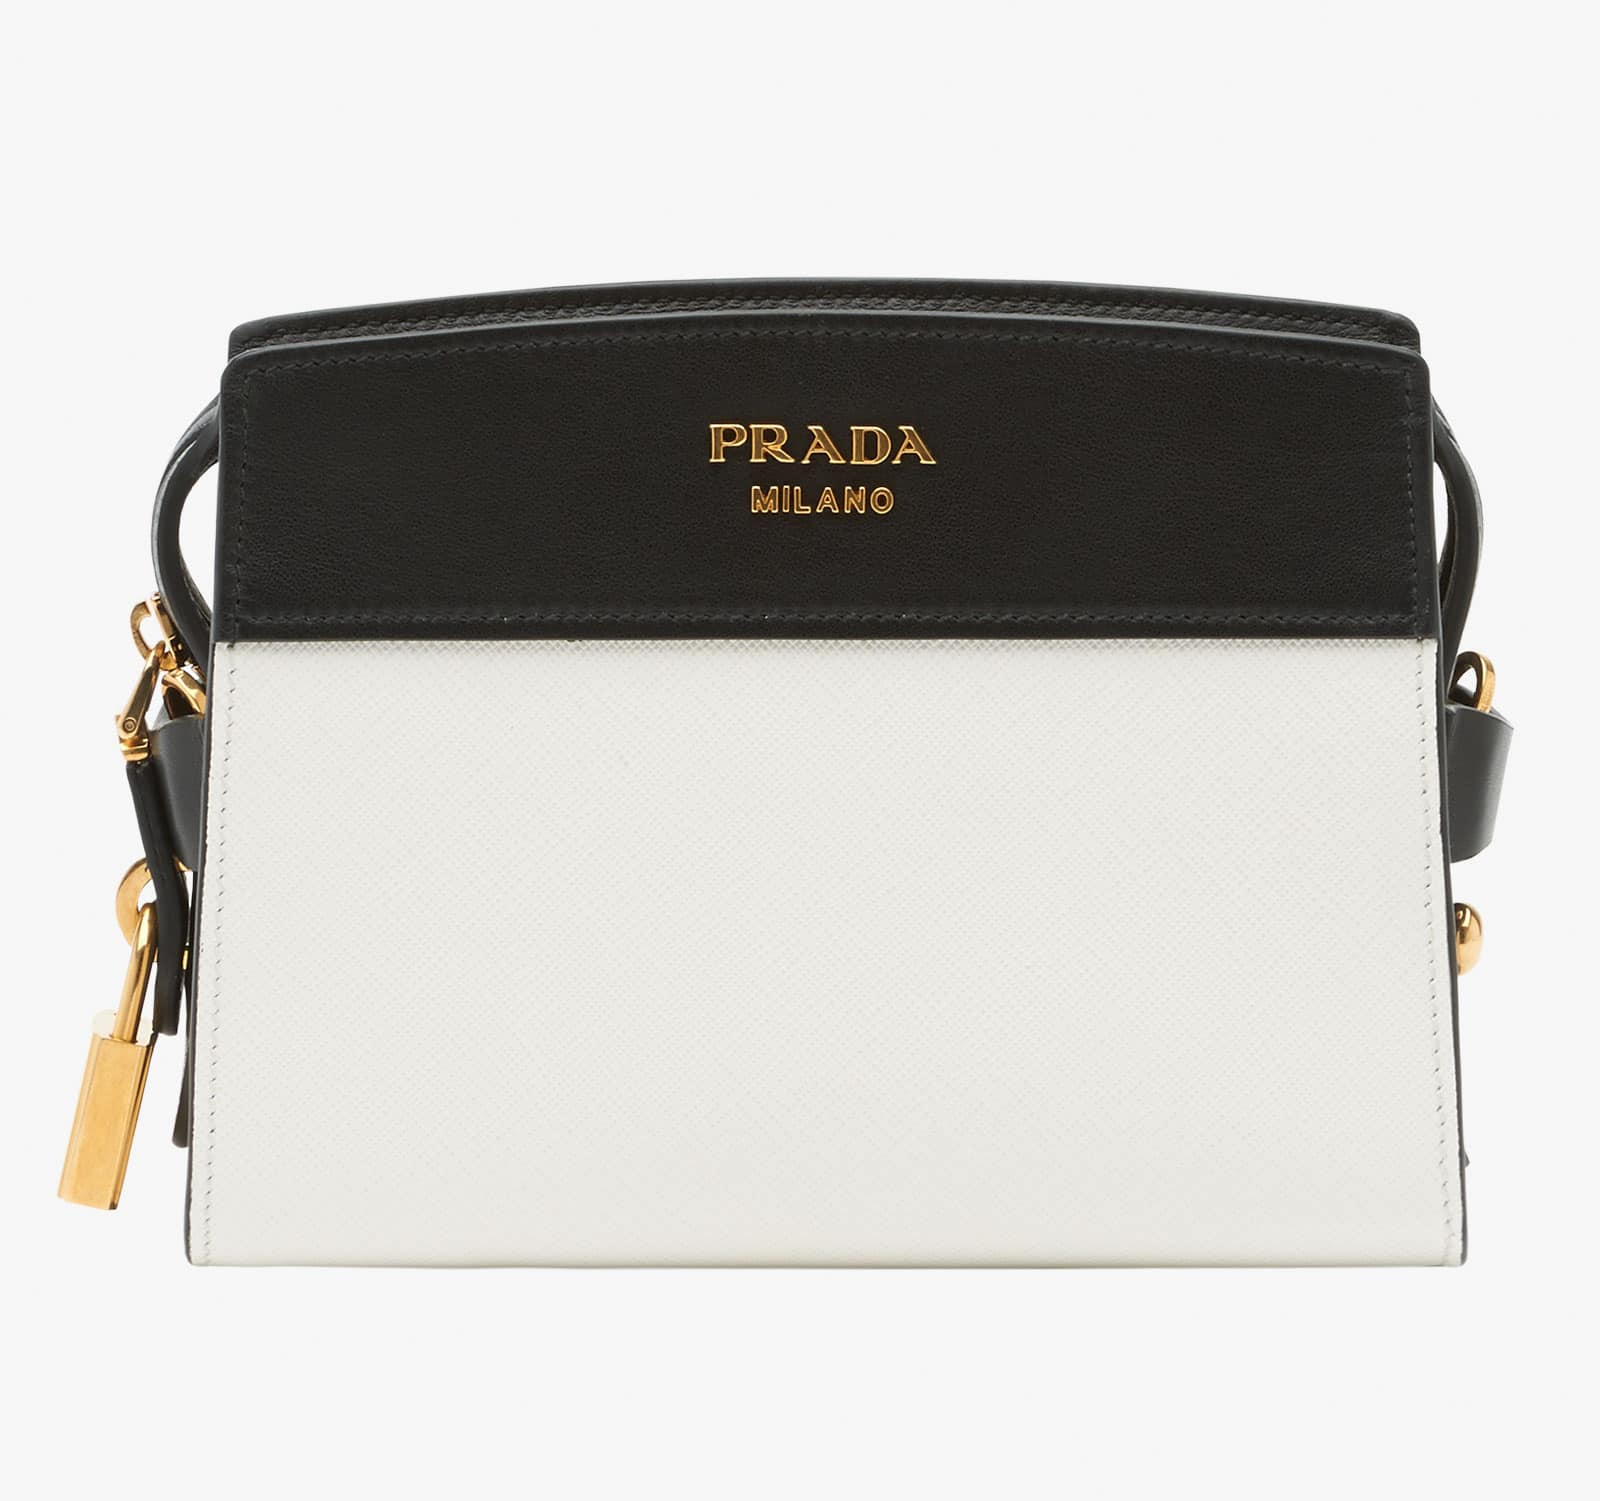 prada purse pink - Prada Esplanade Bag Reference Guide | Spotted Fashion